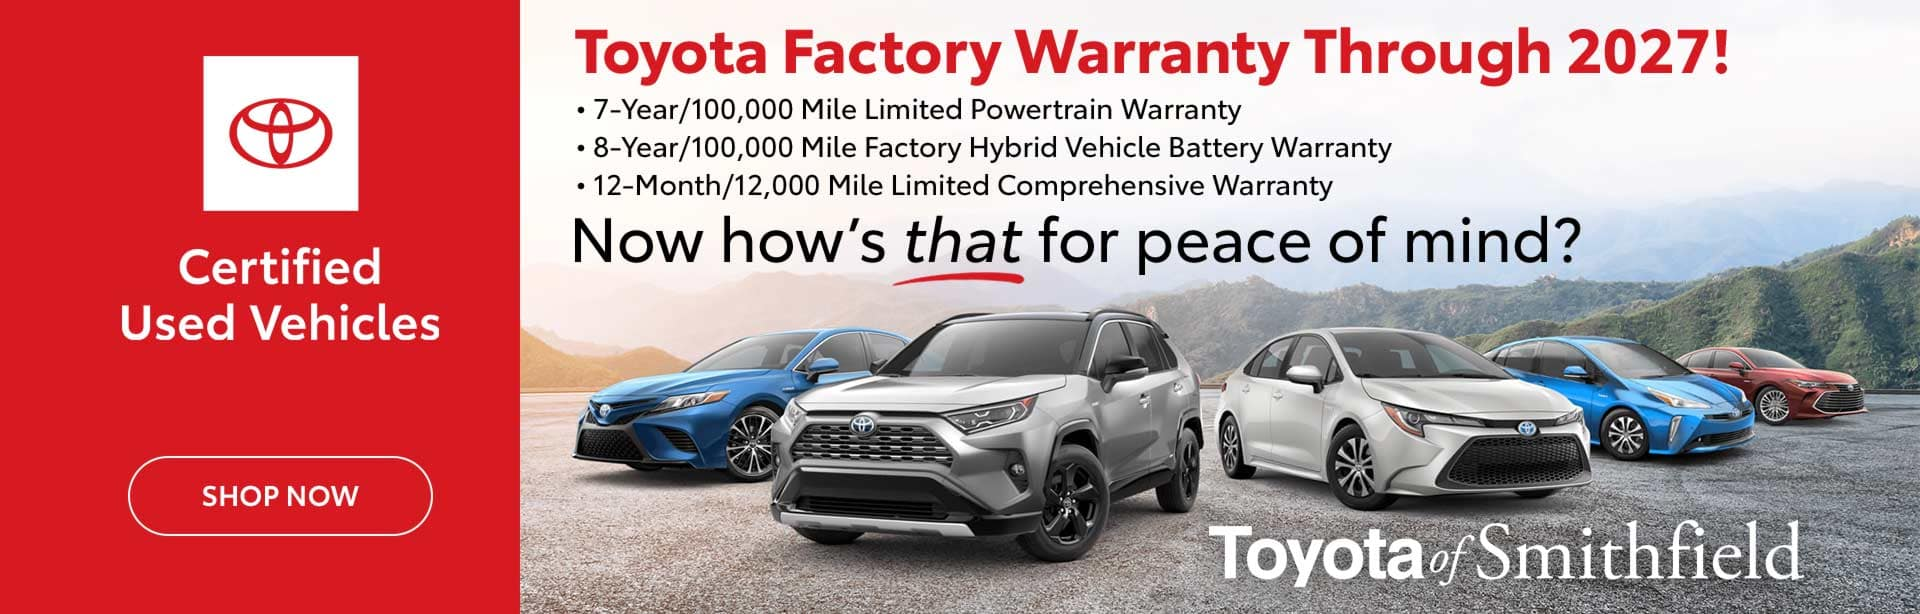 Toyota Certified Used Vehicles Warranty Info Slider